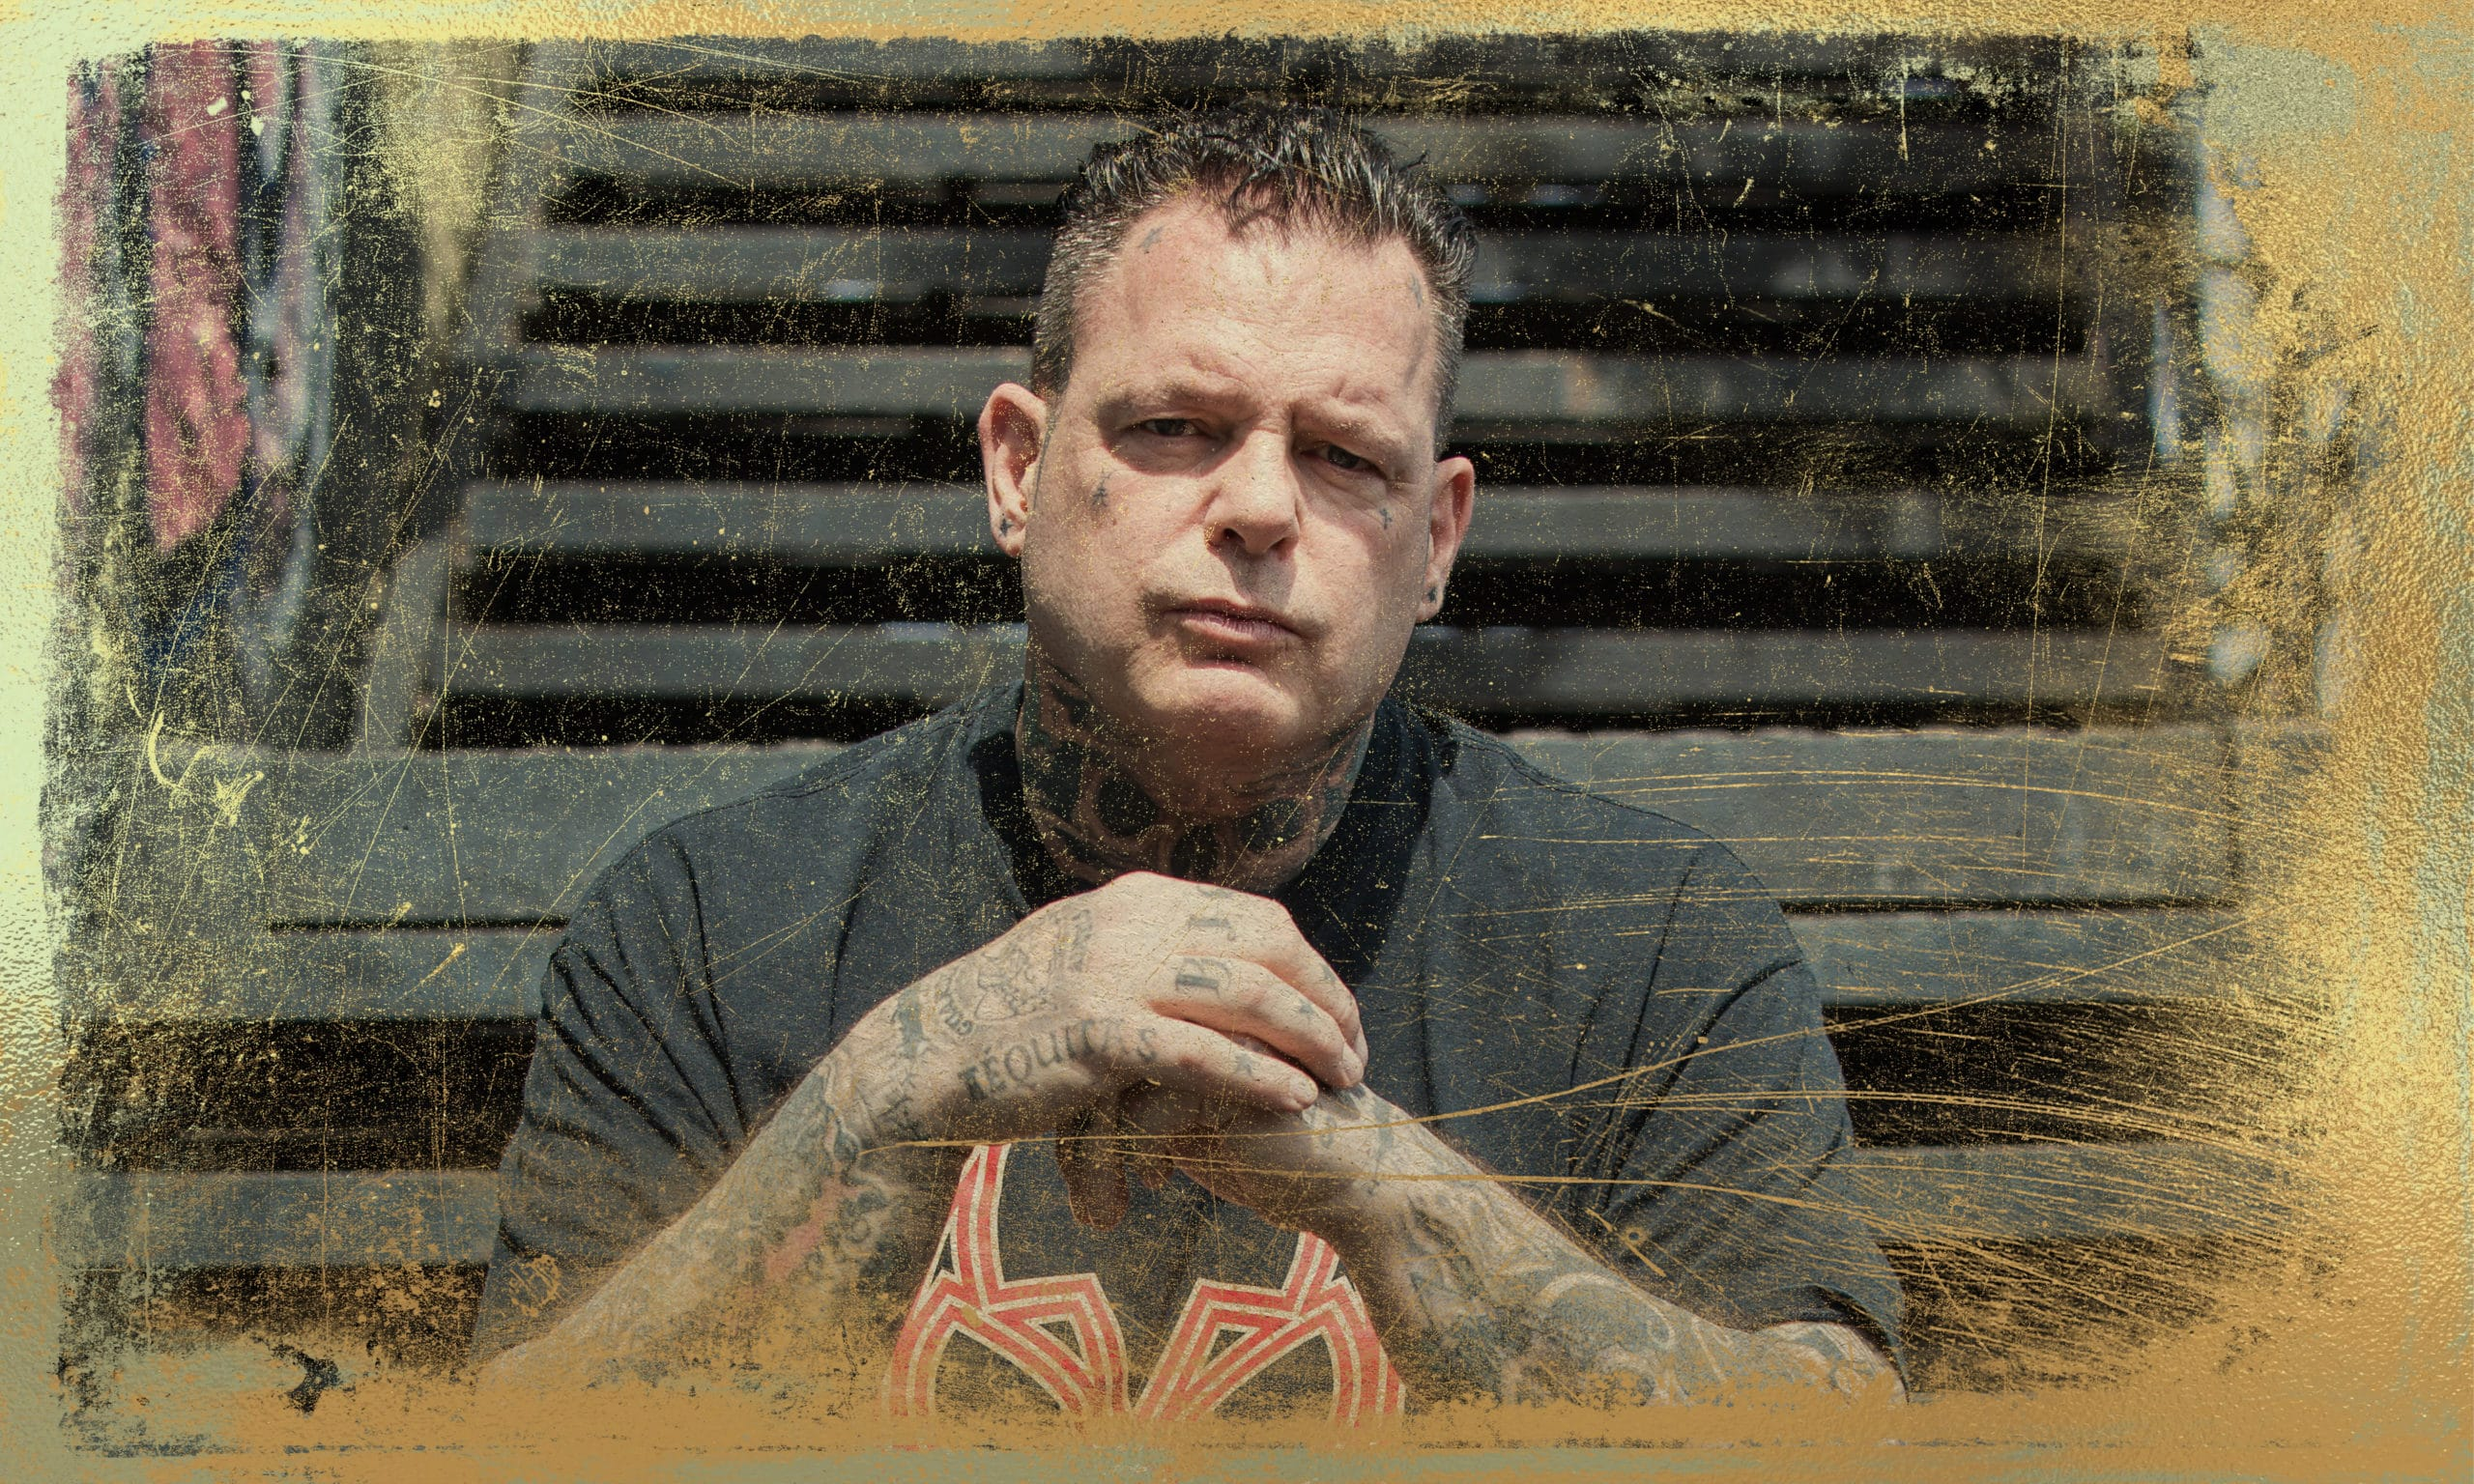 Vampiro (Ian Hodgkinson) - Art by The Natural Aristocrat® - Photo Credit: Courtesy of Epic Pictures / Millennial PR